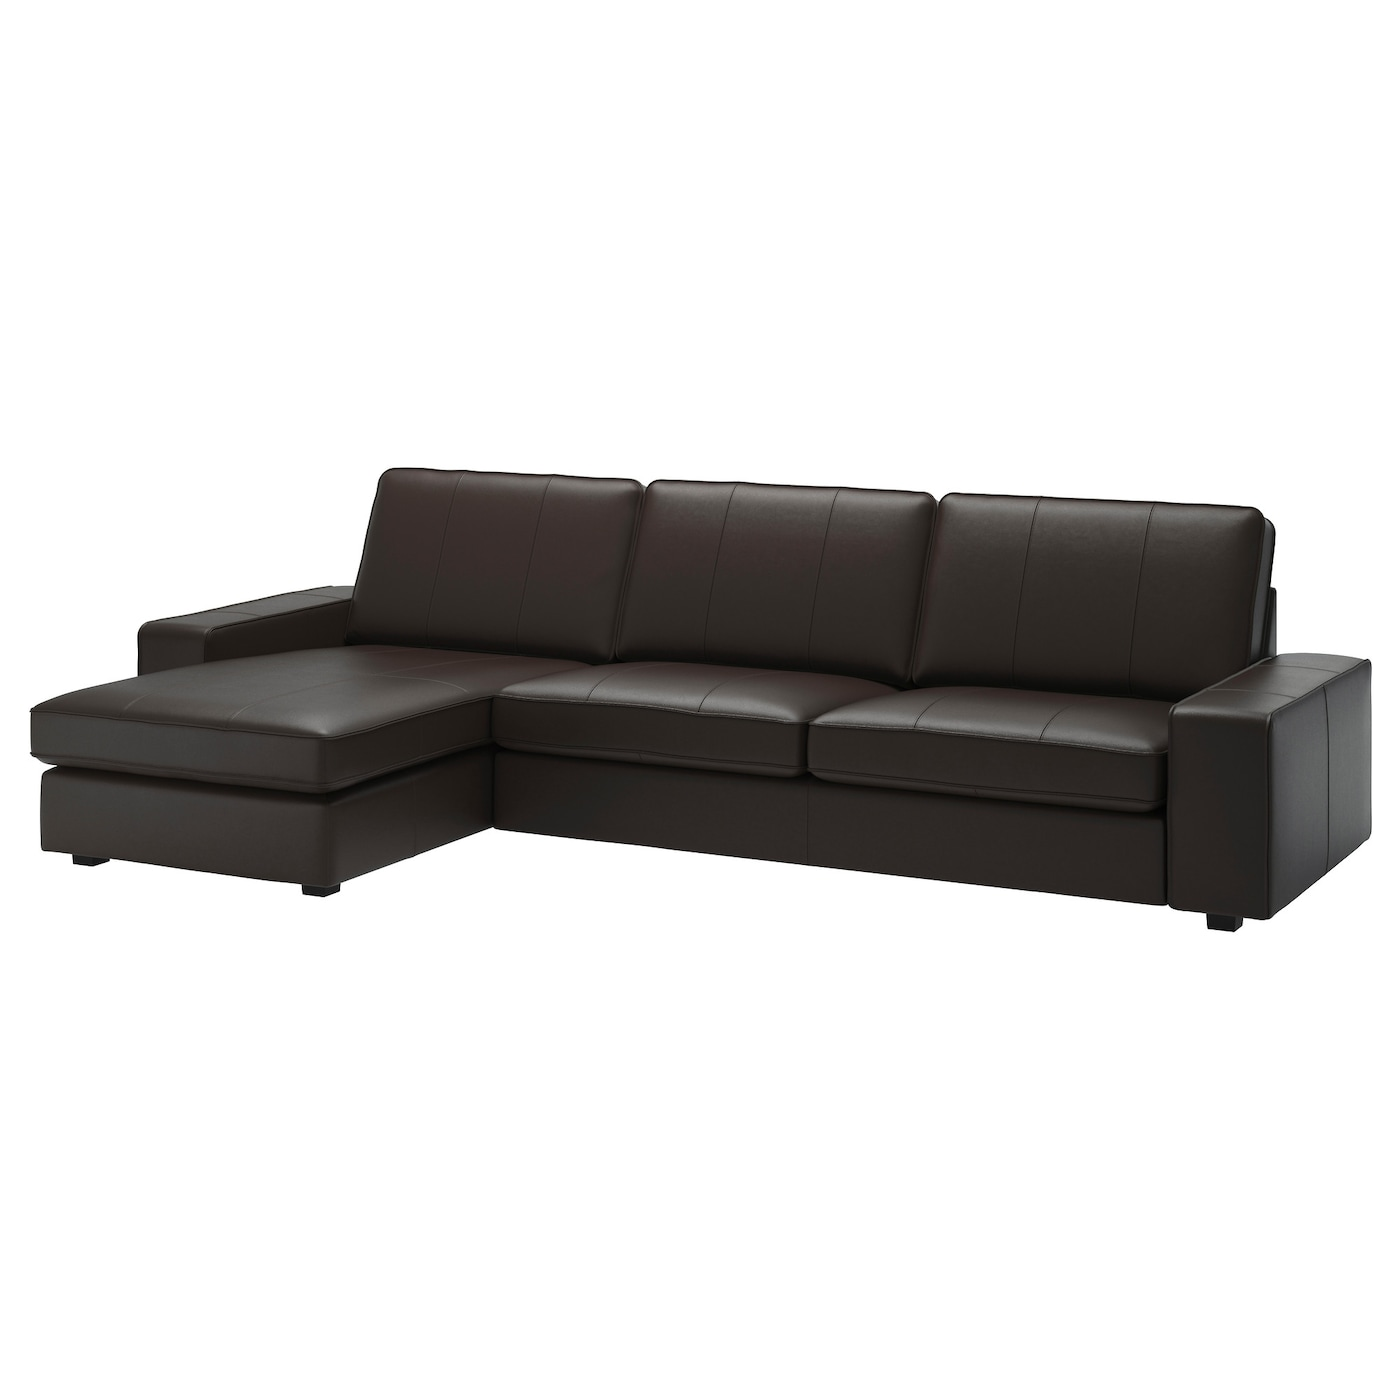 Kivik 4 seat sofa with chaise longue grann bomstad dark for 4 seat sectional sofa chaise